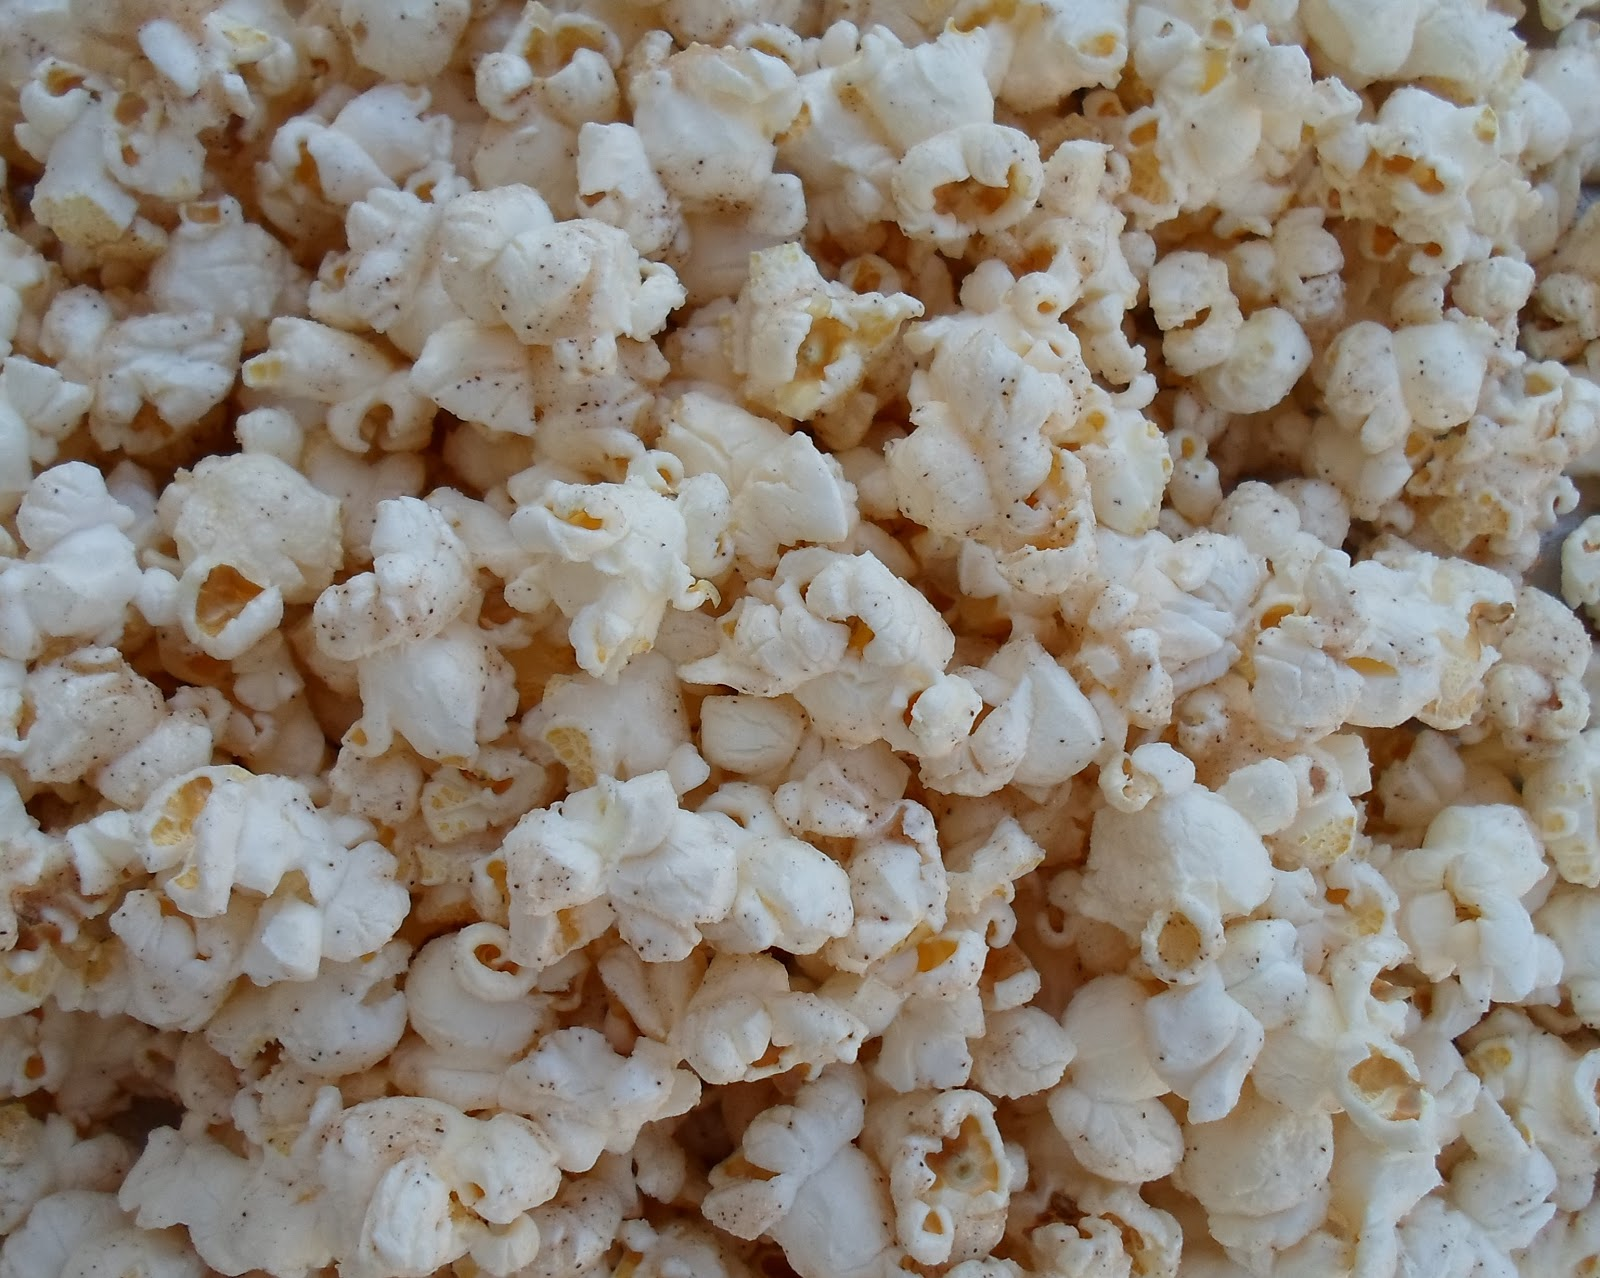 quarts popped popcorn- 1/2 C kernels using a hot air popper